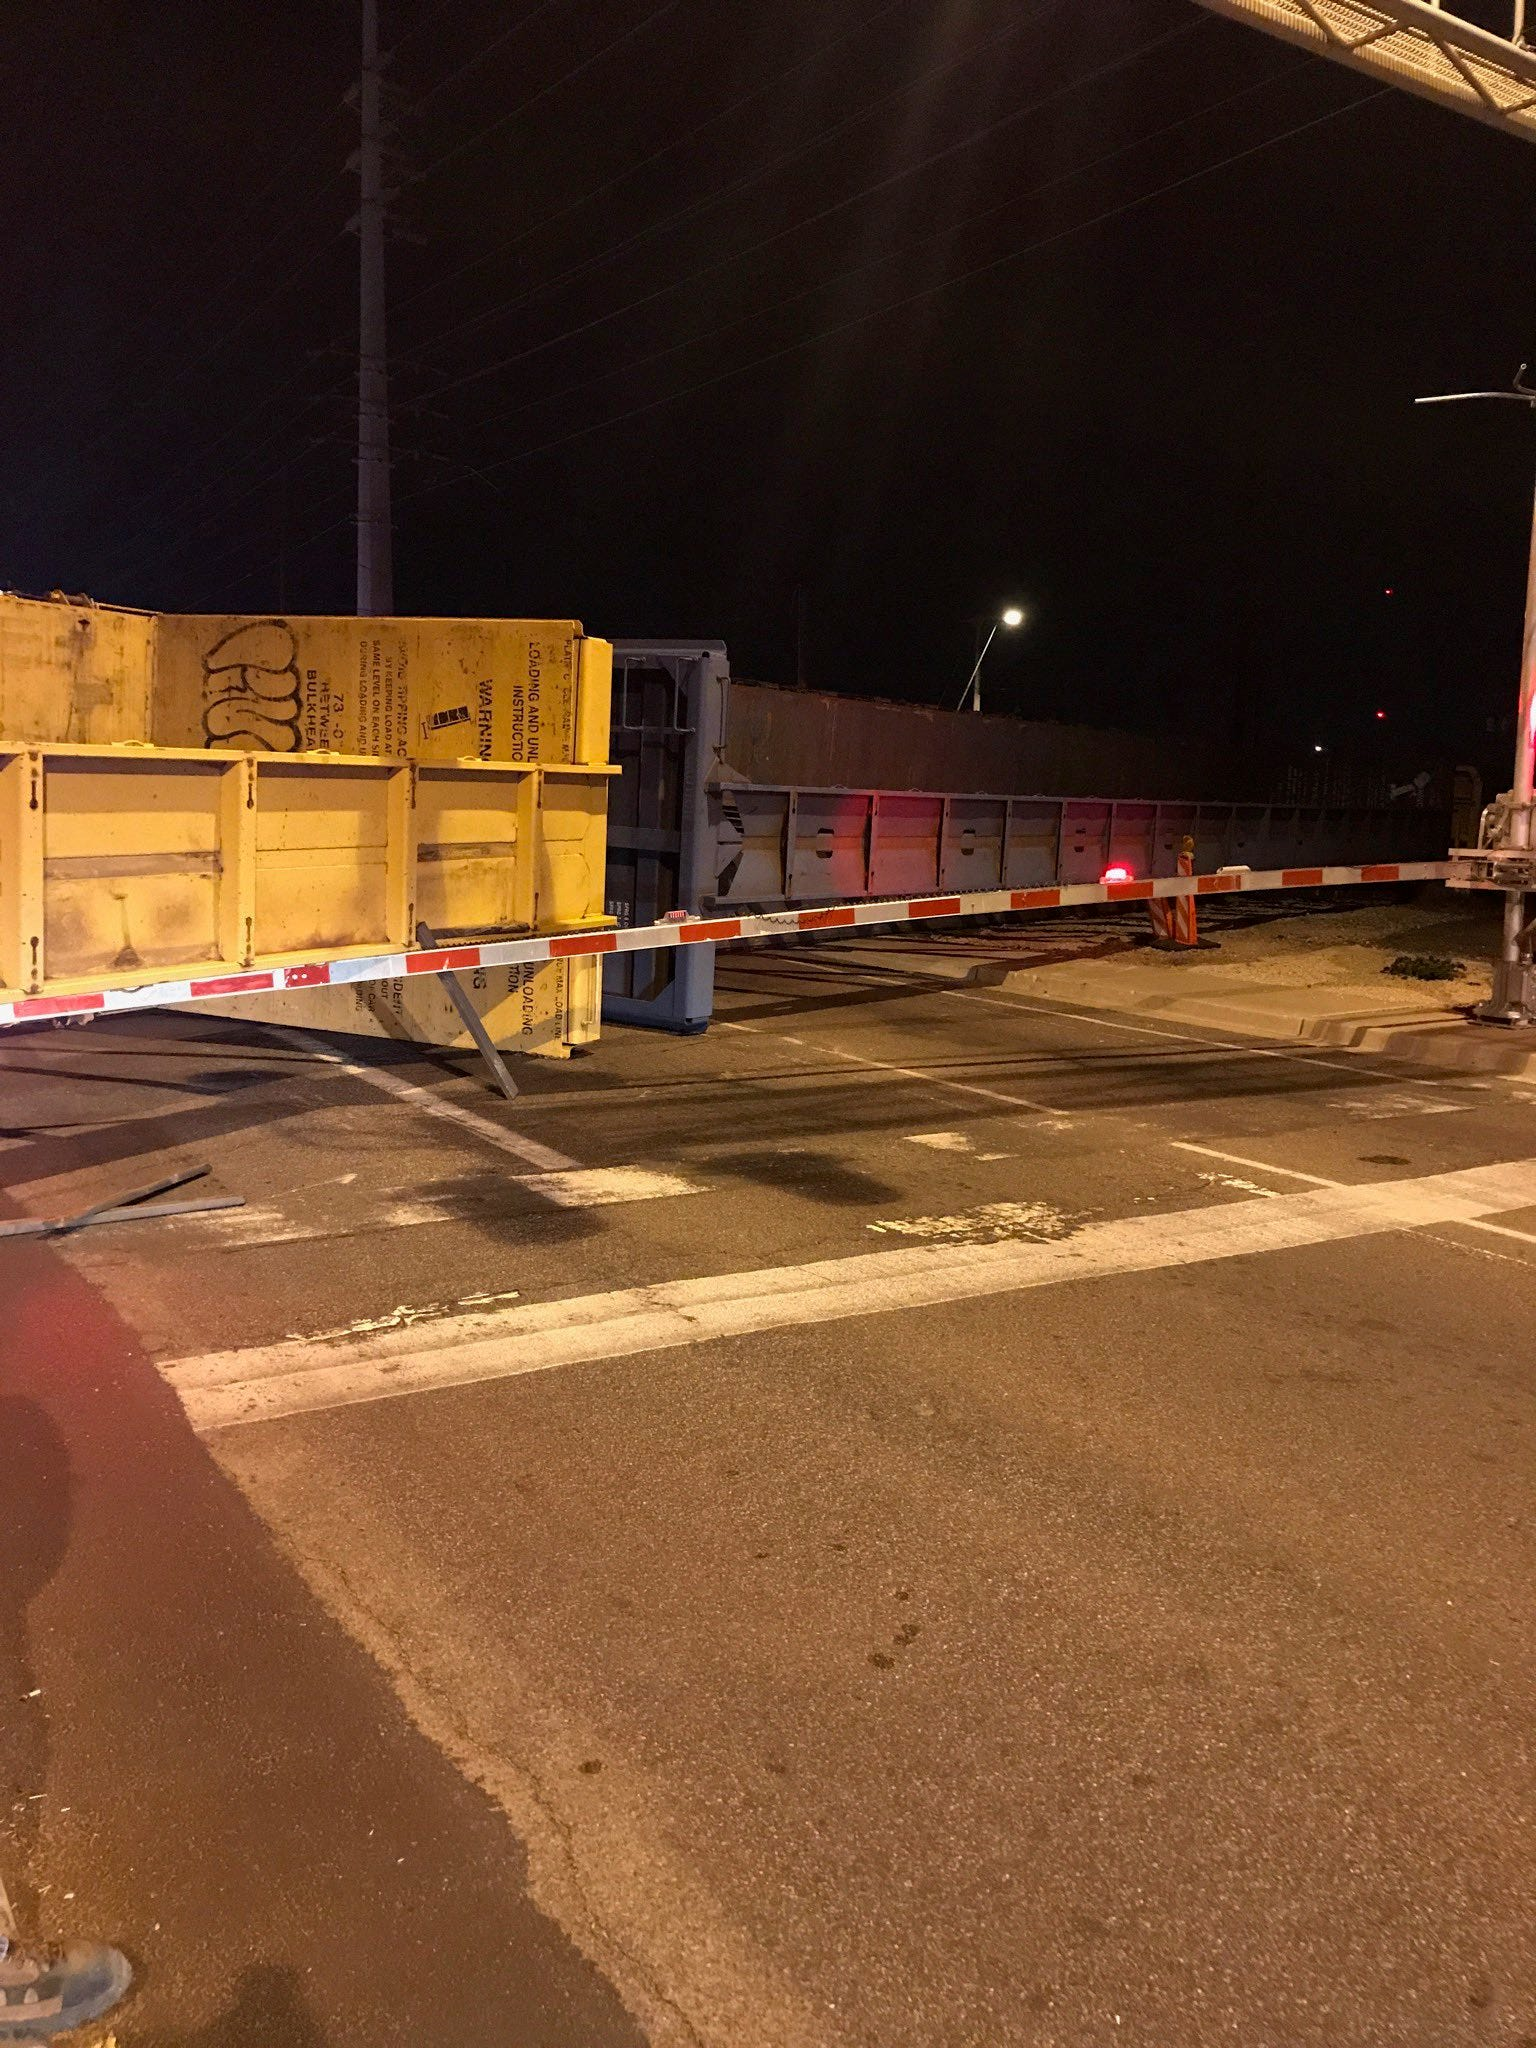 Overturned railroad car blocks traffic at Mesa intersection